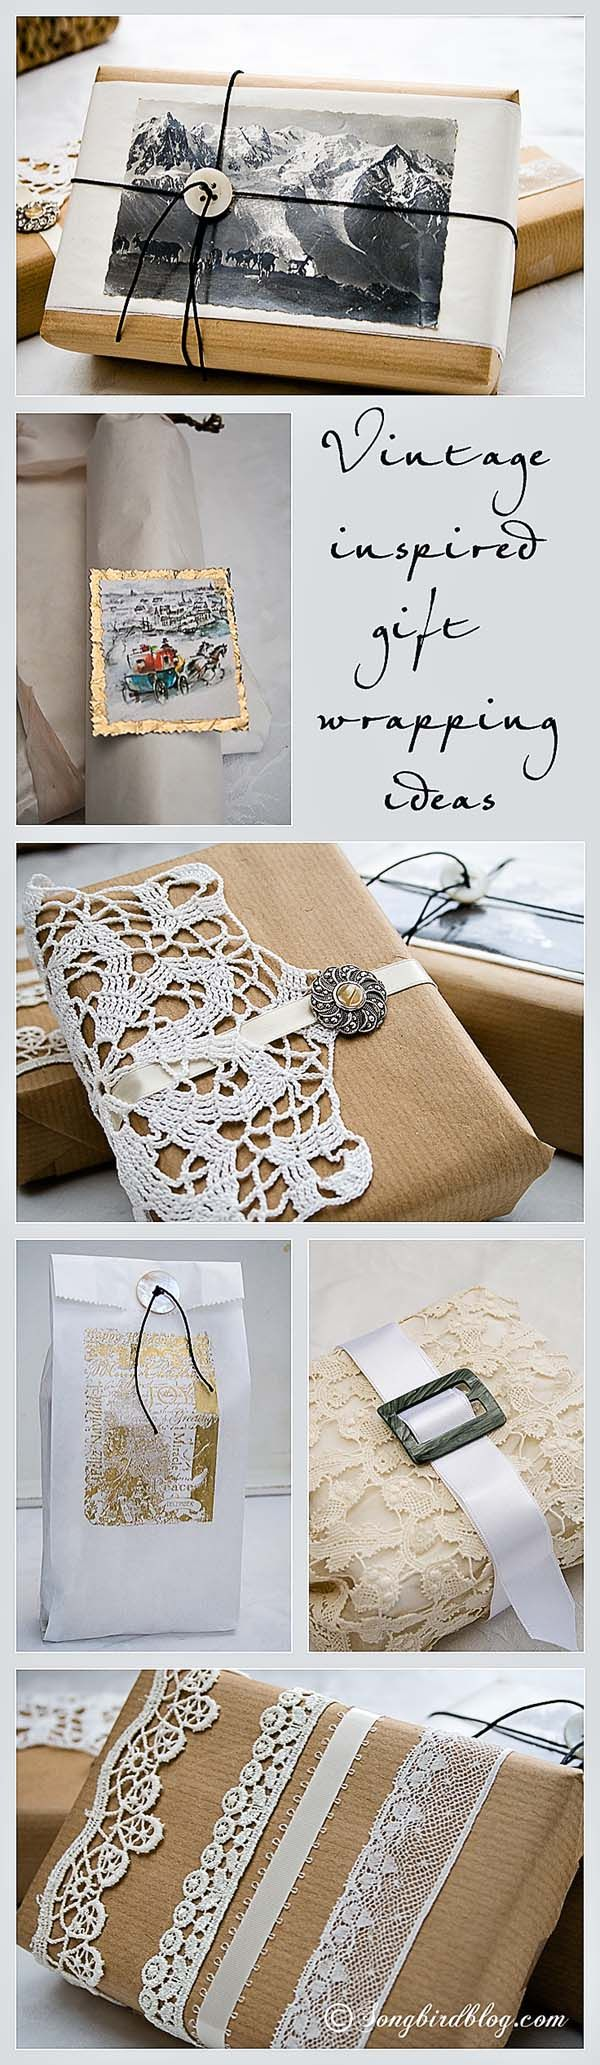 6 Ideas for a vintage style gift wrap. These gift wrapping ideas make your wrapping a gift itself. And they are easy!